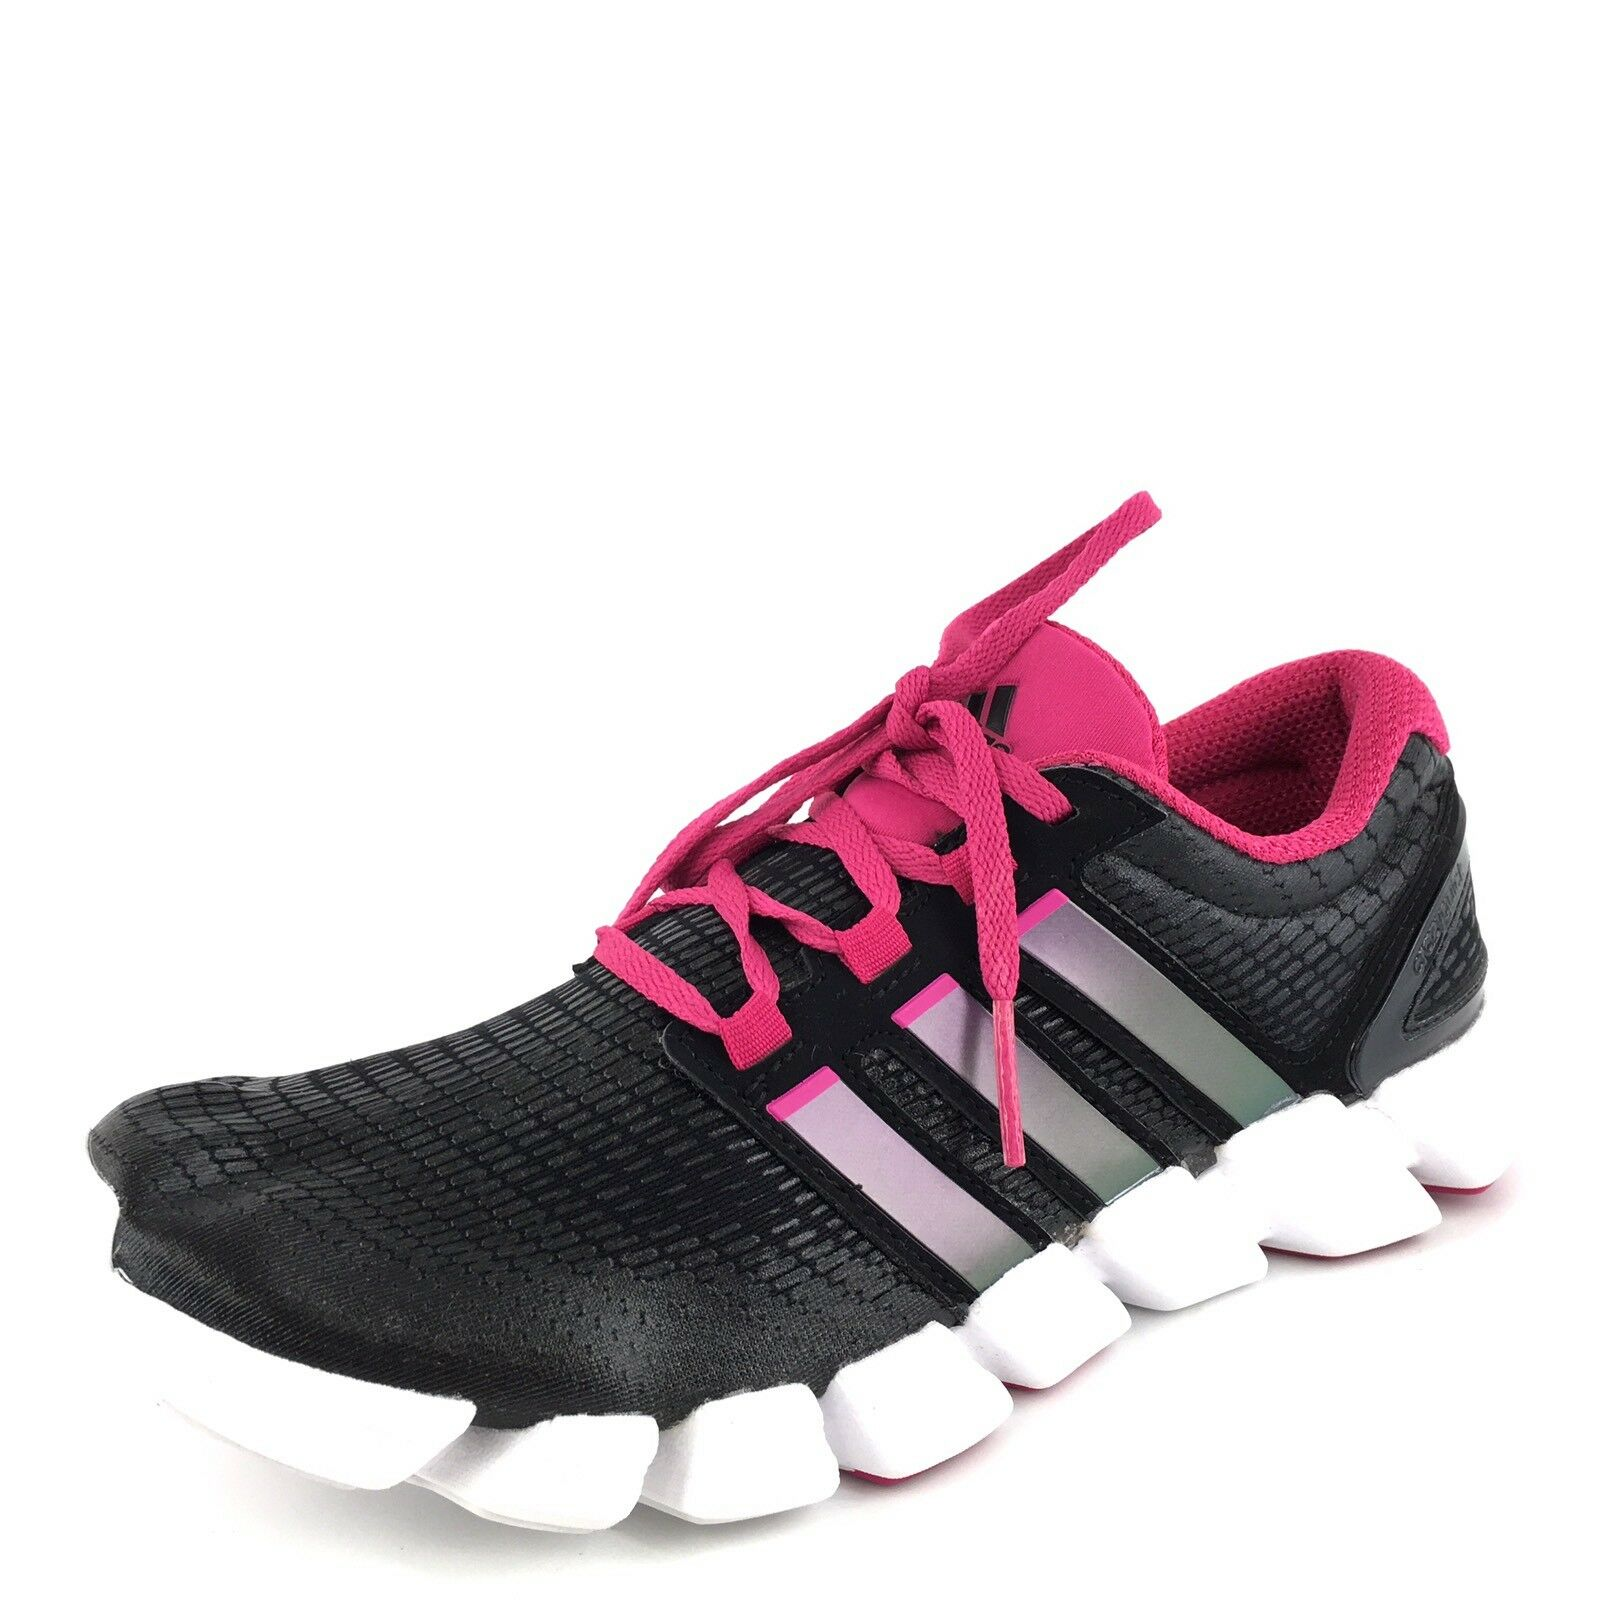 ae980511ca8 Adidas Adipure Crazyquick Black Mesh Athletic Athletic Athletic Running  Shoes Womens Size 8.5 M  a3c113 2010 Nike Air ...